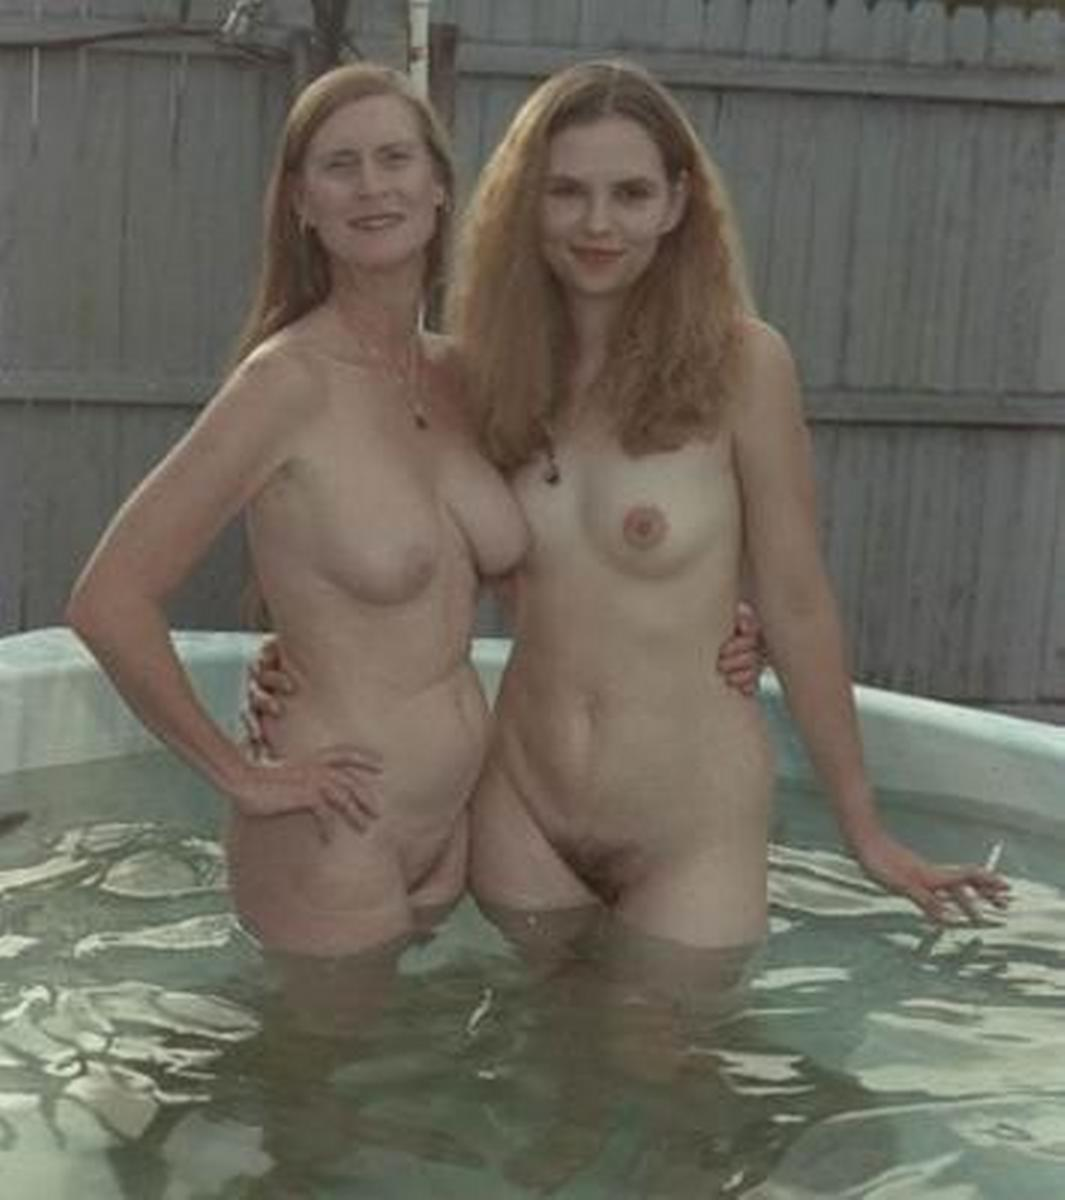 Thought differently, real mothers and daughters posing nude pics amusing